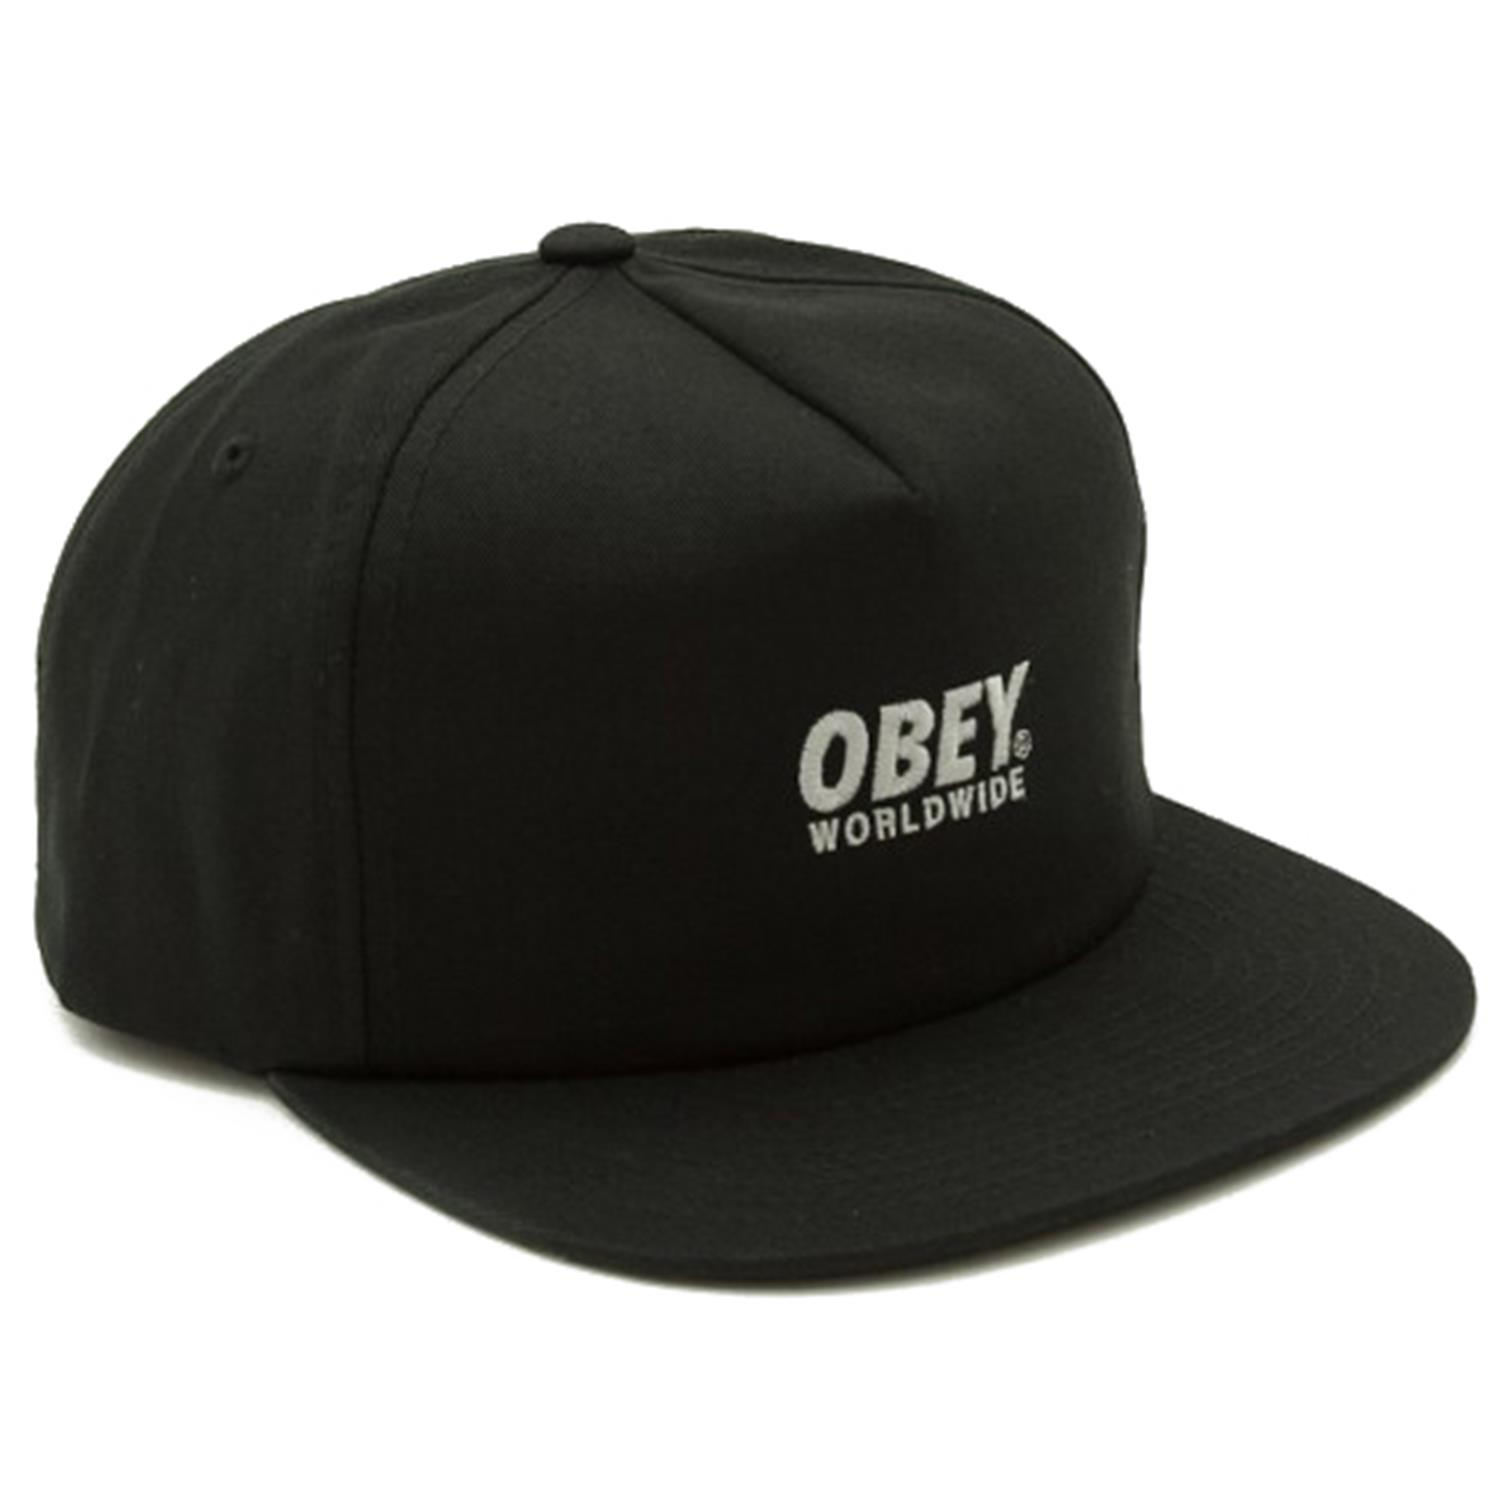 Obey Hat - Celebrities who wear, use, or own Obey Hat / Coolspotters